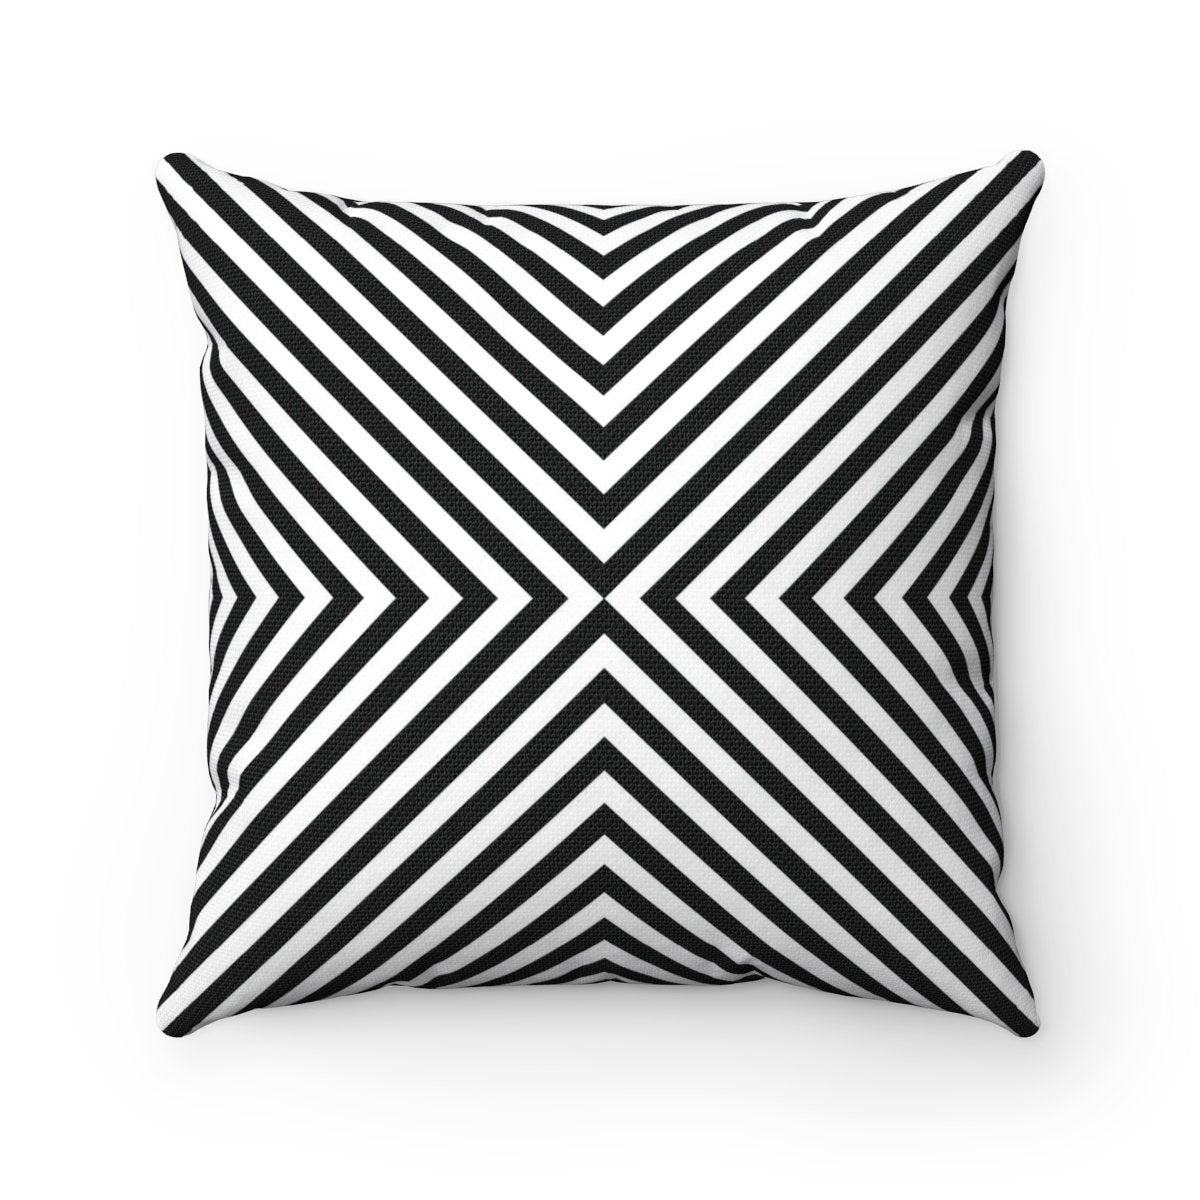 Black and white geometric contemporary decorative cushion cover-Home Decor - Decorative Accents - Pillows & Throws - Decorative Pillows-Maison d'Elite-14x14-Très Elite